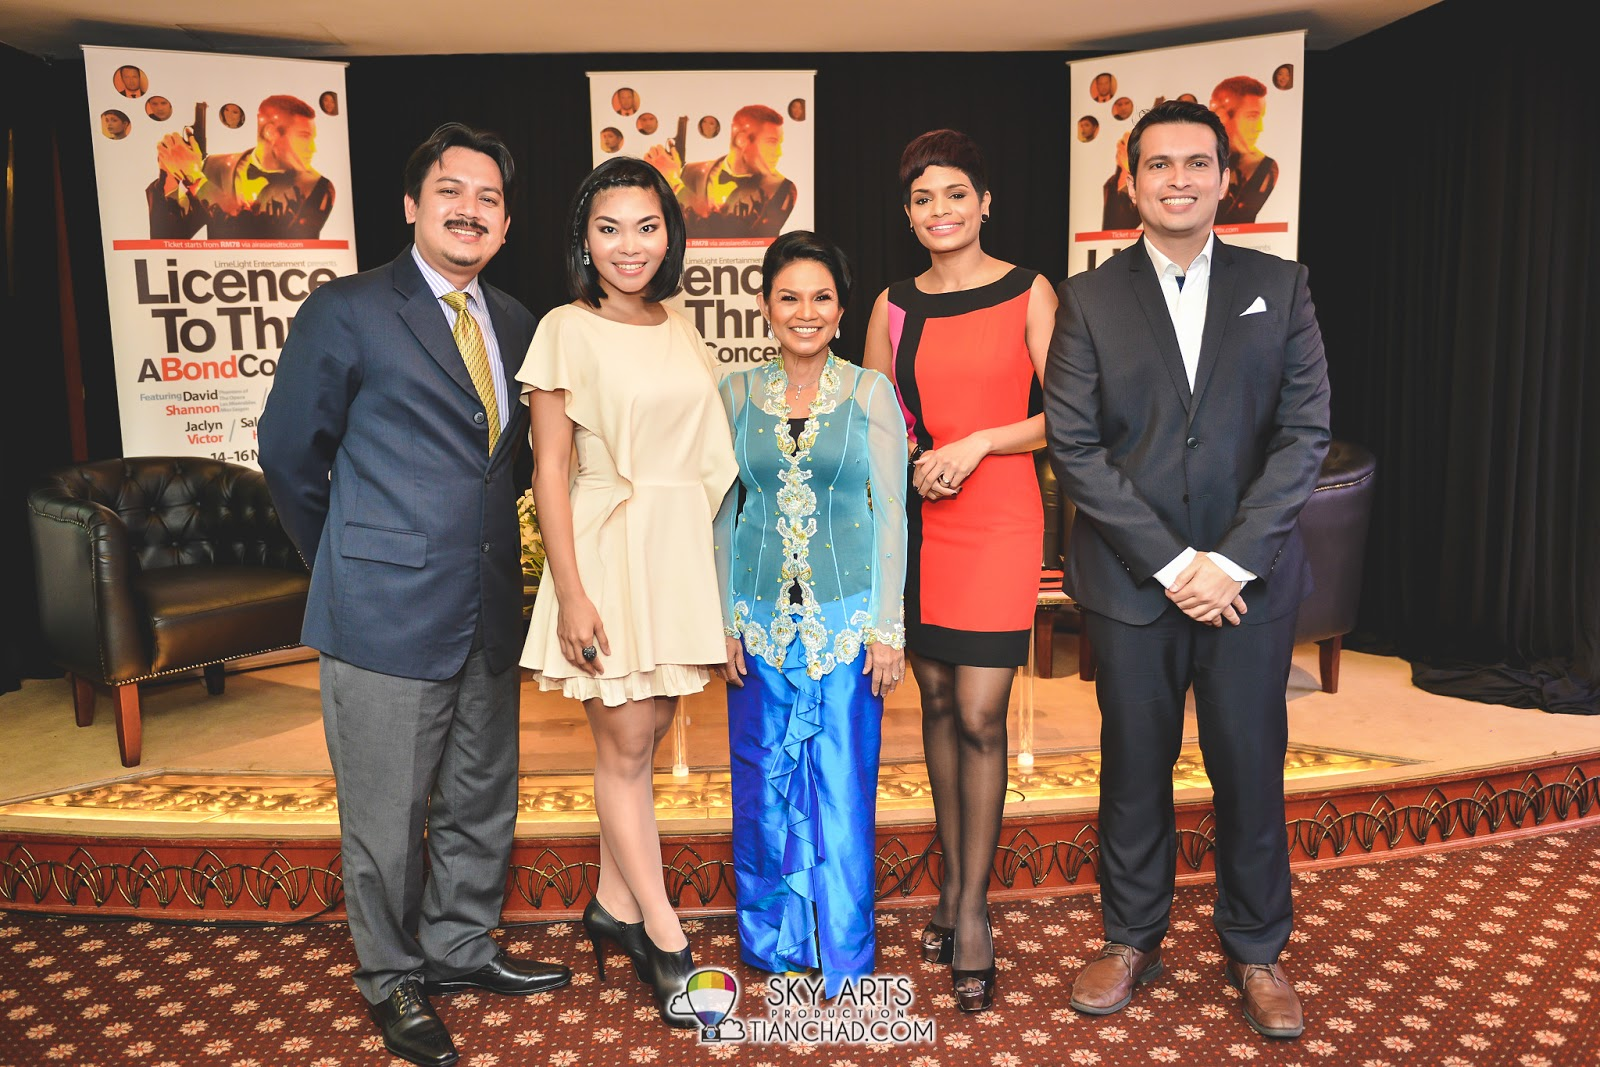 Nik Kamaruzaman Nik Husin of Istana Budaya, Nikki Palikat, Salamiah Hassan, Jaclyn Victor and Brian Johnson Lowe of LimeLight Entertainment